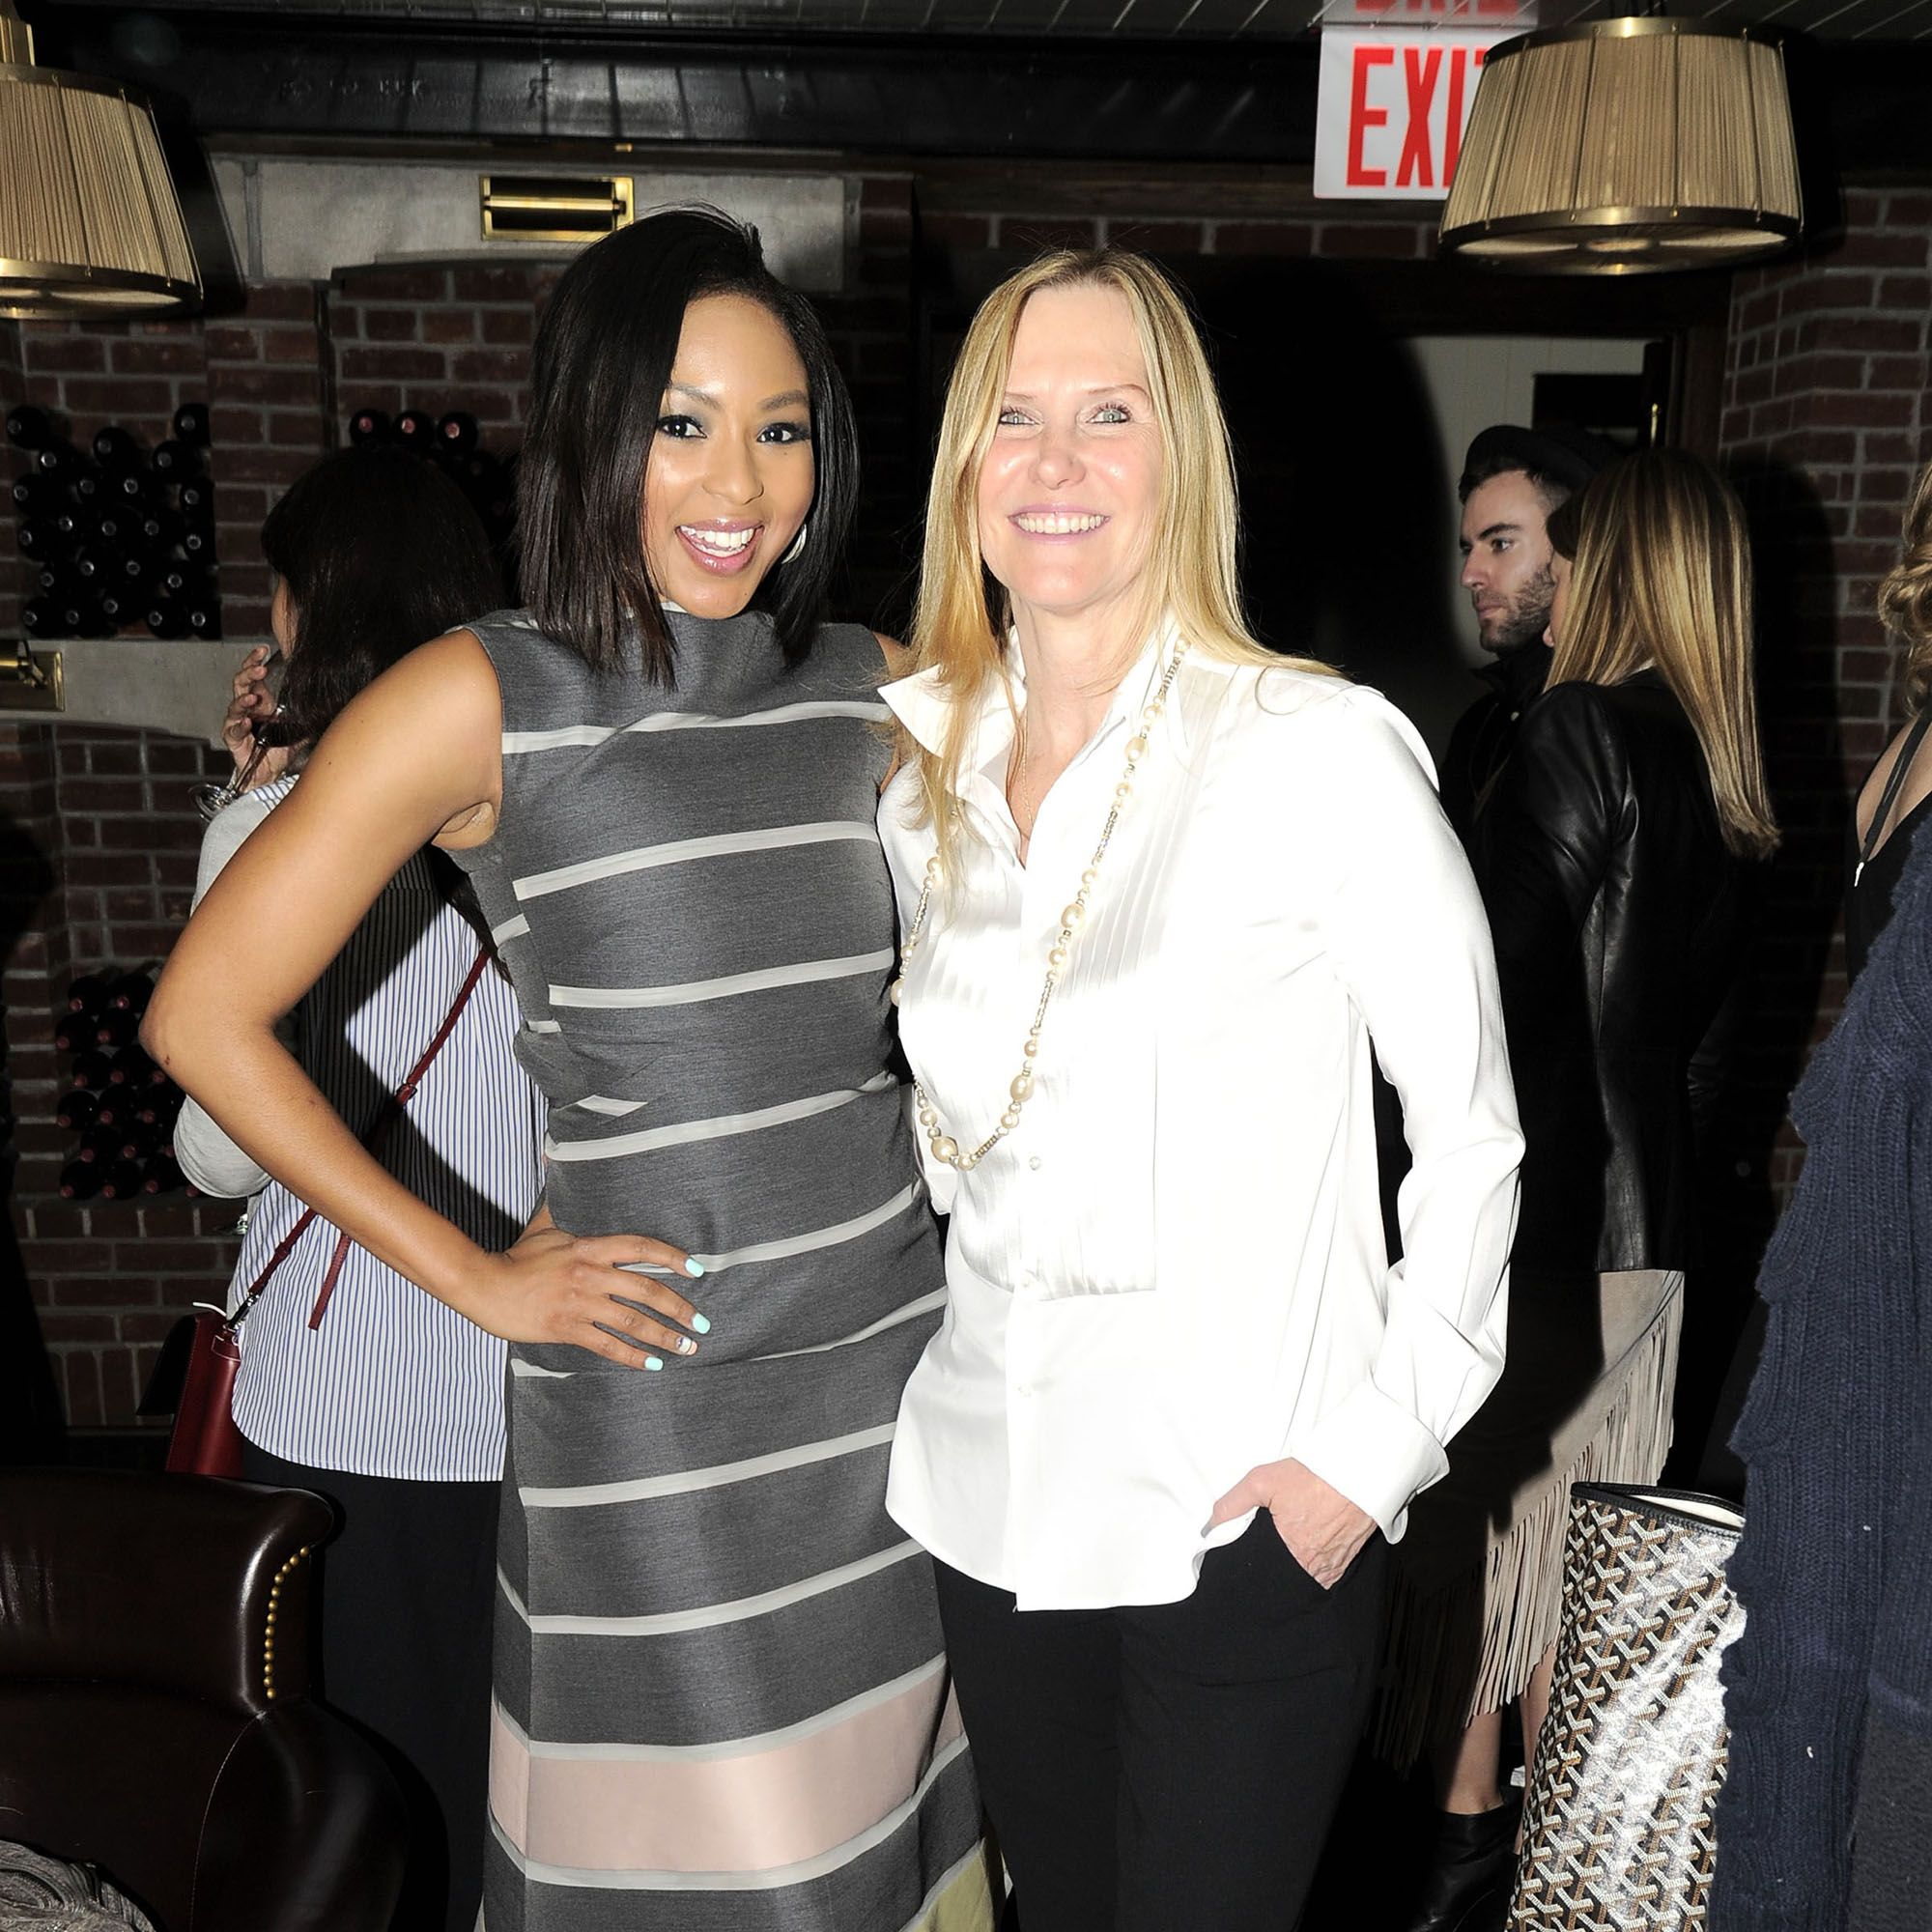 Alicia Quarles, Stuart Weitzman Legwrap Capsule Collection, Susan Duffy==Stuart Weitzman Celebrates Spring and a Limited Edition Collection to Benefit Cancer Research==Lafayette, 380 Lafayette Street, NYC==March 25, 2015==©Patrick McMullan==Photo - Nicholas Hunt/PatrickMcMullan.com====